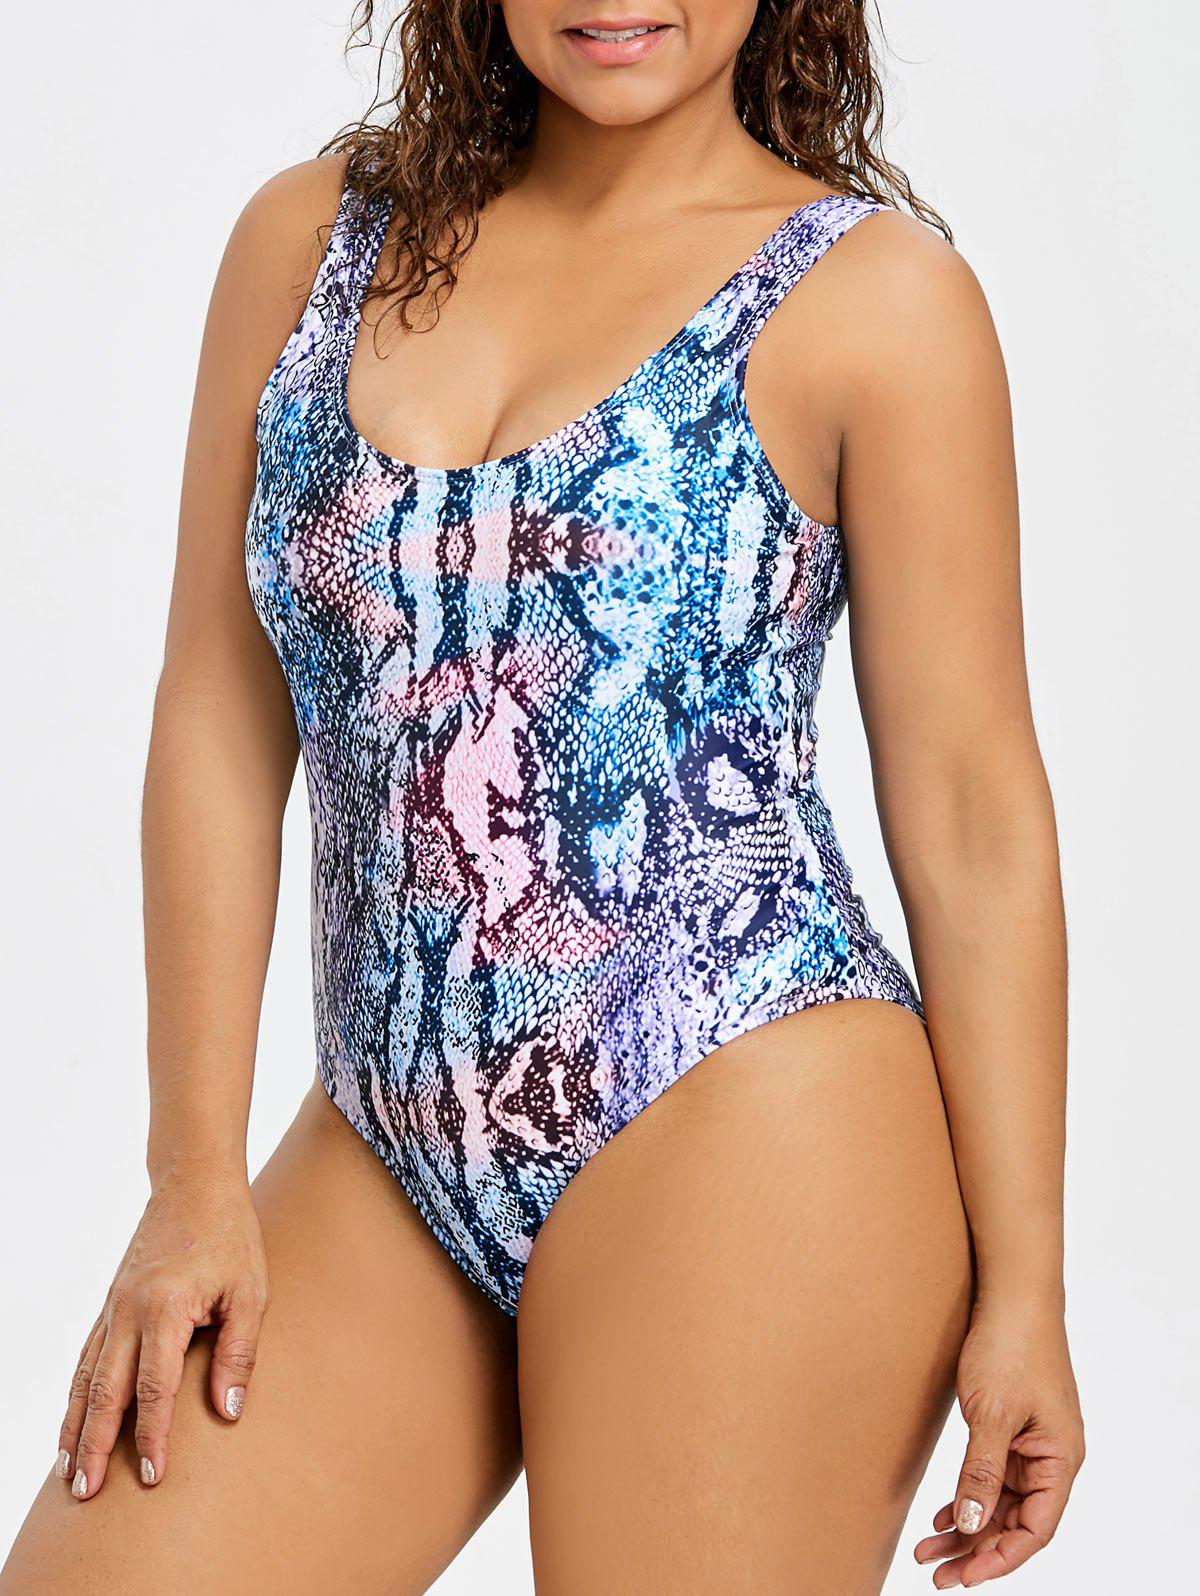 2019 Graphic Plus Size Thong One Piece Swimsuit  65f502459a85